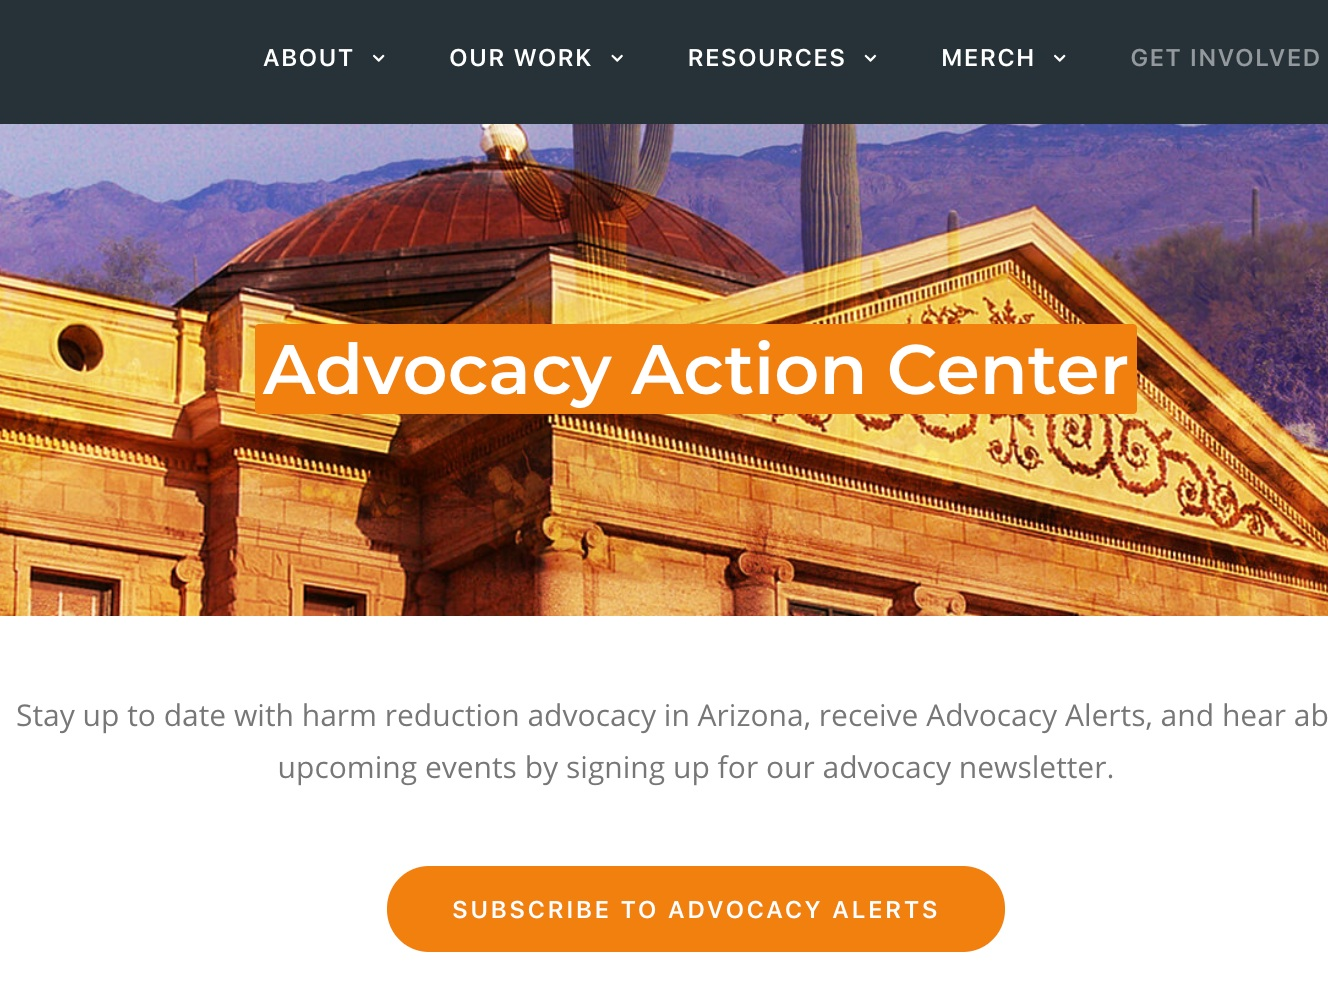 community organizing - Sonoran Prevention Works hosts an Advocacy Action Center on their website. If you are interested in fighting for the rights of people who use drugs in Arizona, join their Health Advisory Committee.